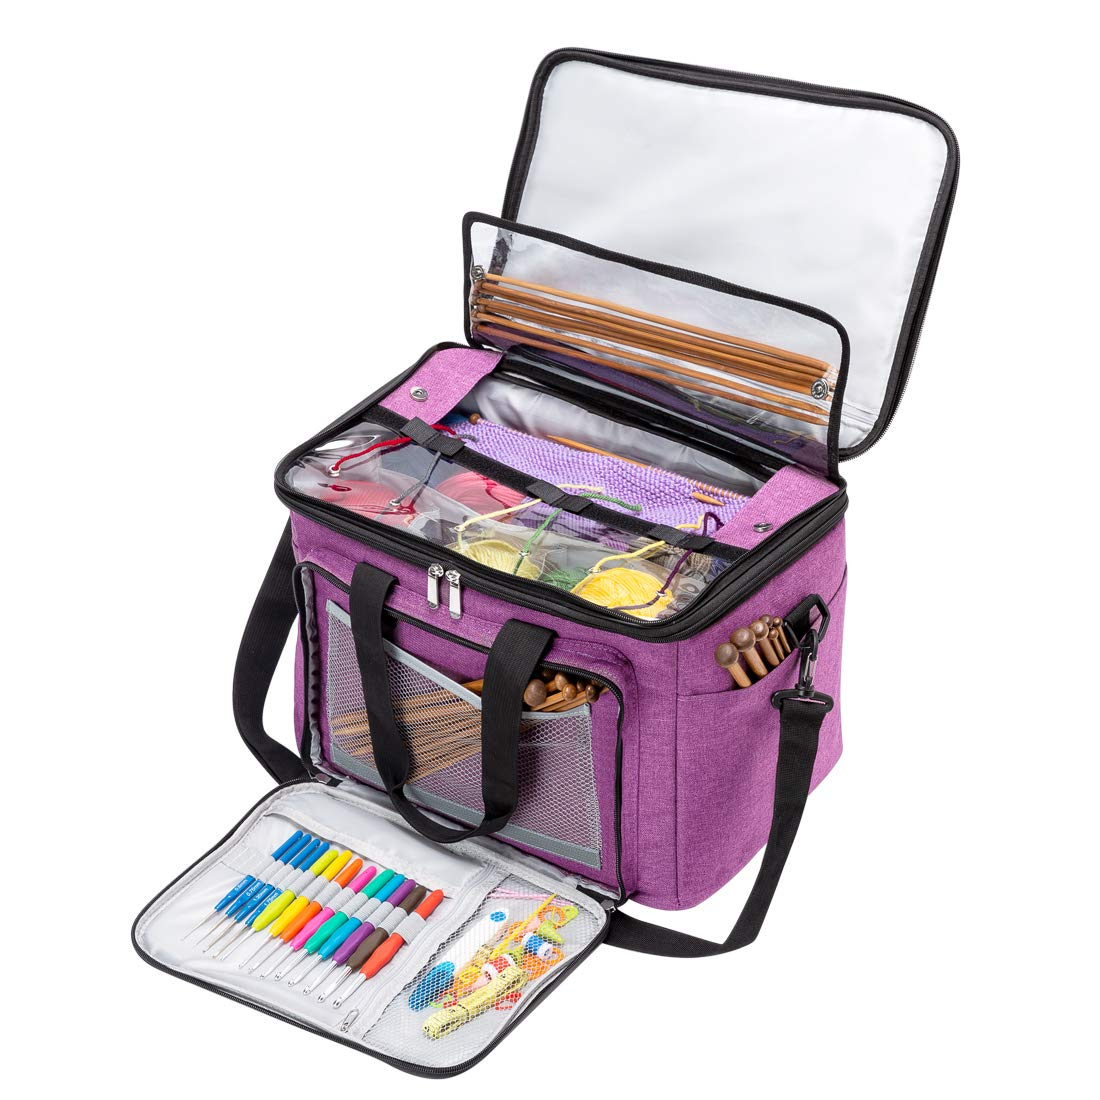 BENGDA Knitting Bags and Totes,Crochet Yarn Organizer with Inner Divider for Knitting Needles,Project and Supplies,Easy to Carry, High Capacity (Purple with Cover) by BENGDA (Image #1)